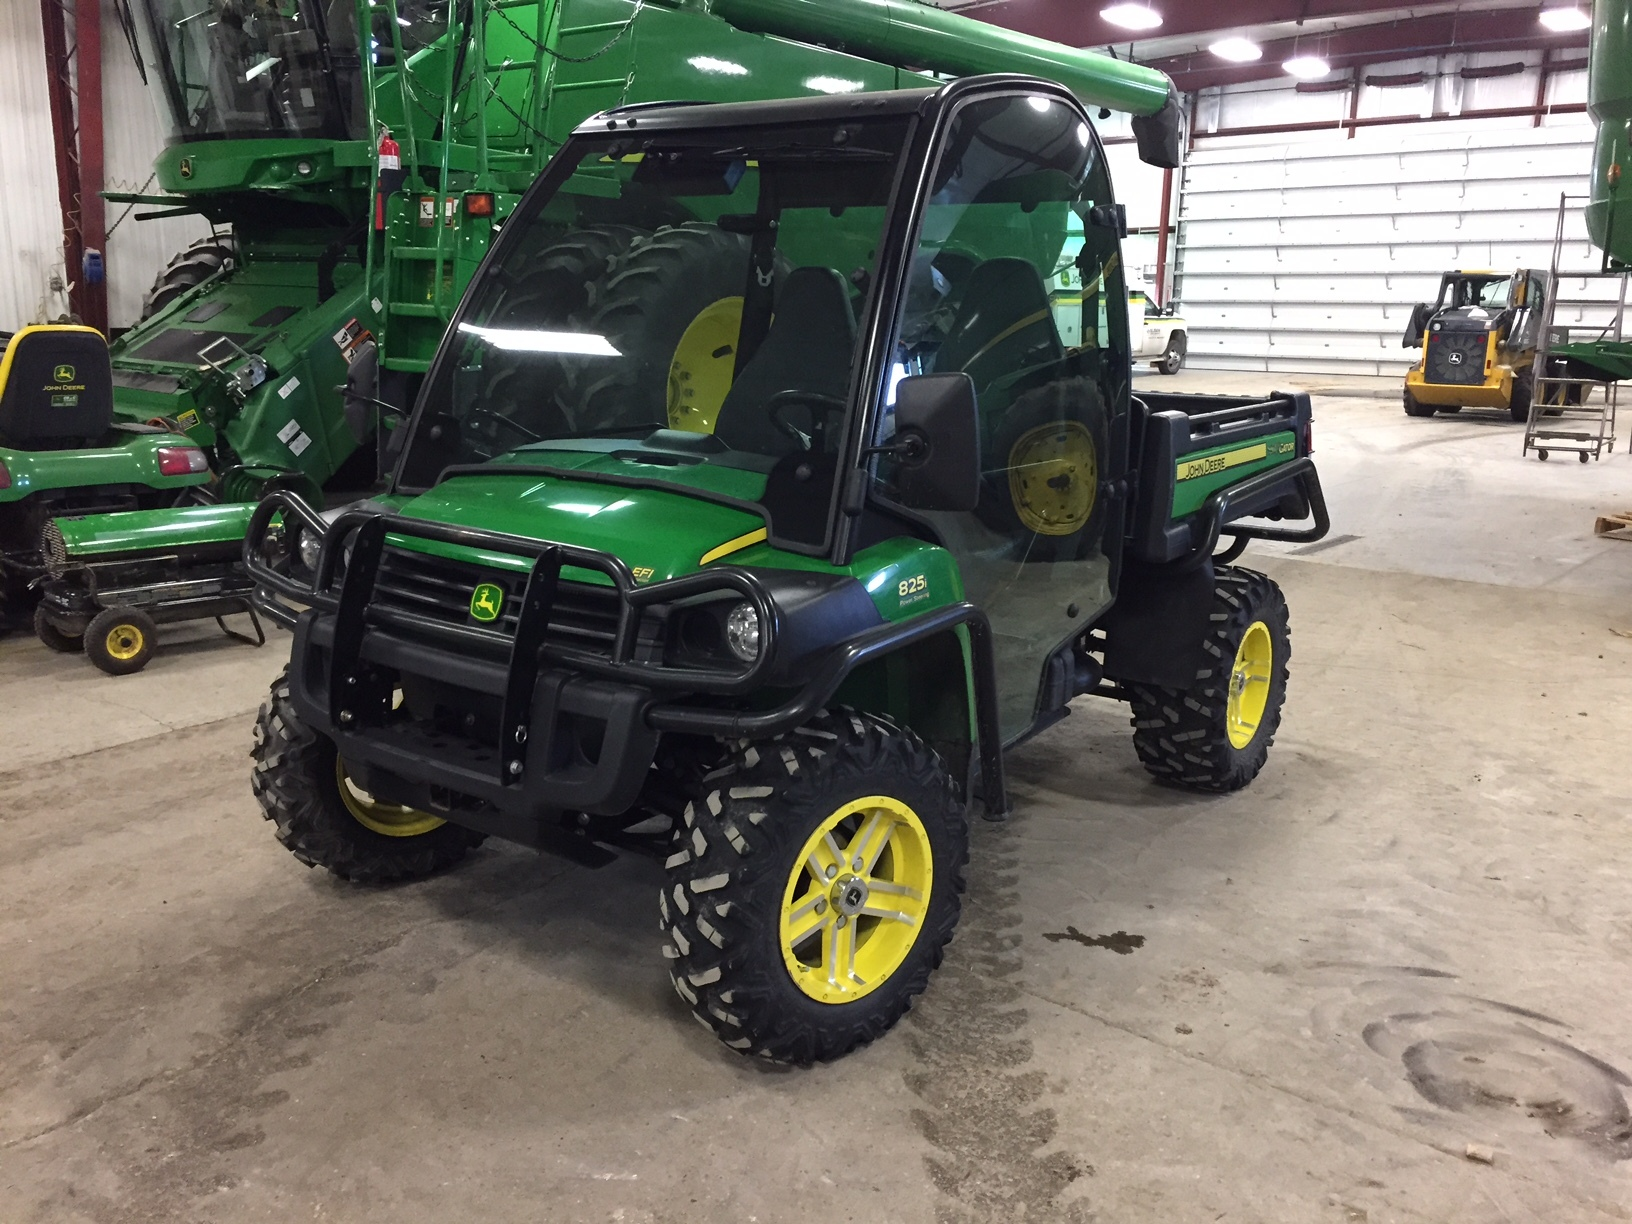 john deere xuv 825i power steering atvs gators for sale 59918. Black Bedroom Furniture Sets. Home Design Ideas